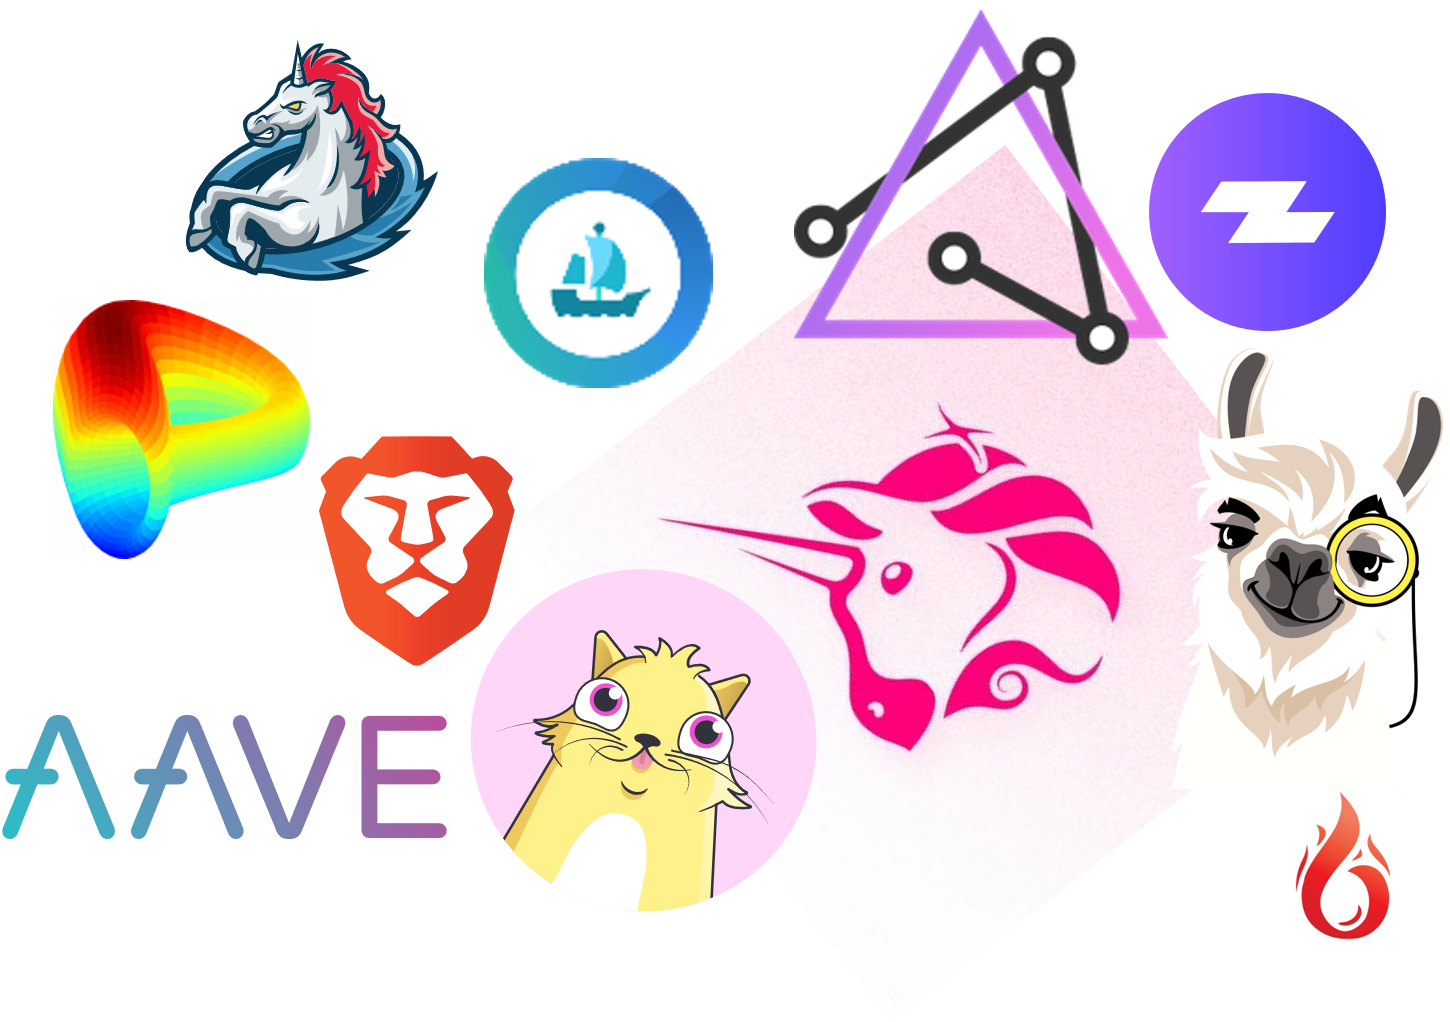 /scouting-for-unicorns-in-a-sea-of-dapps-a3k3t3x feature image